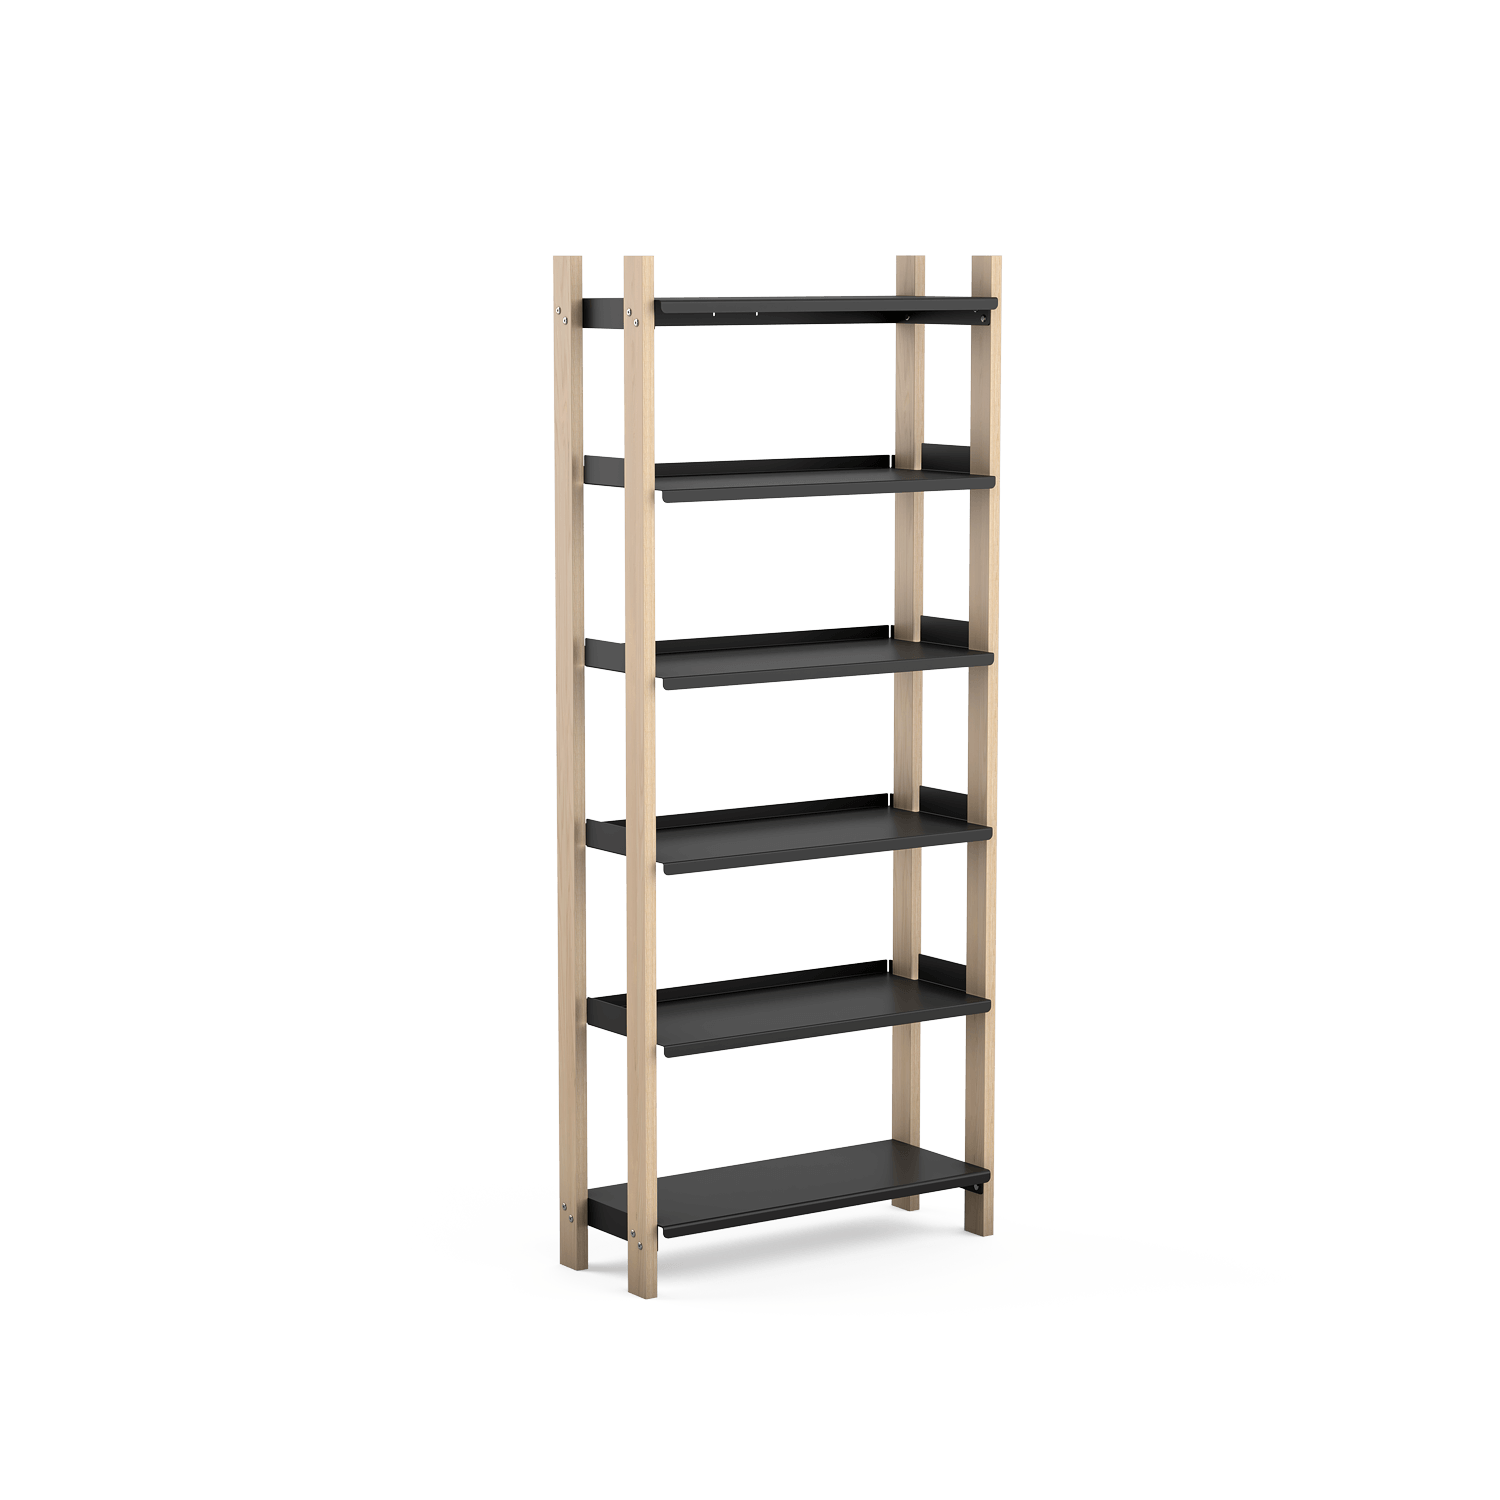 Rendering of the The Shelving System